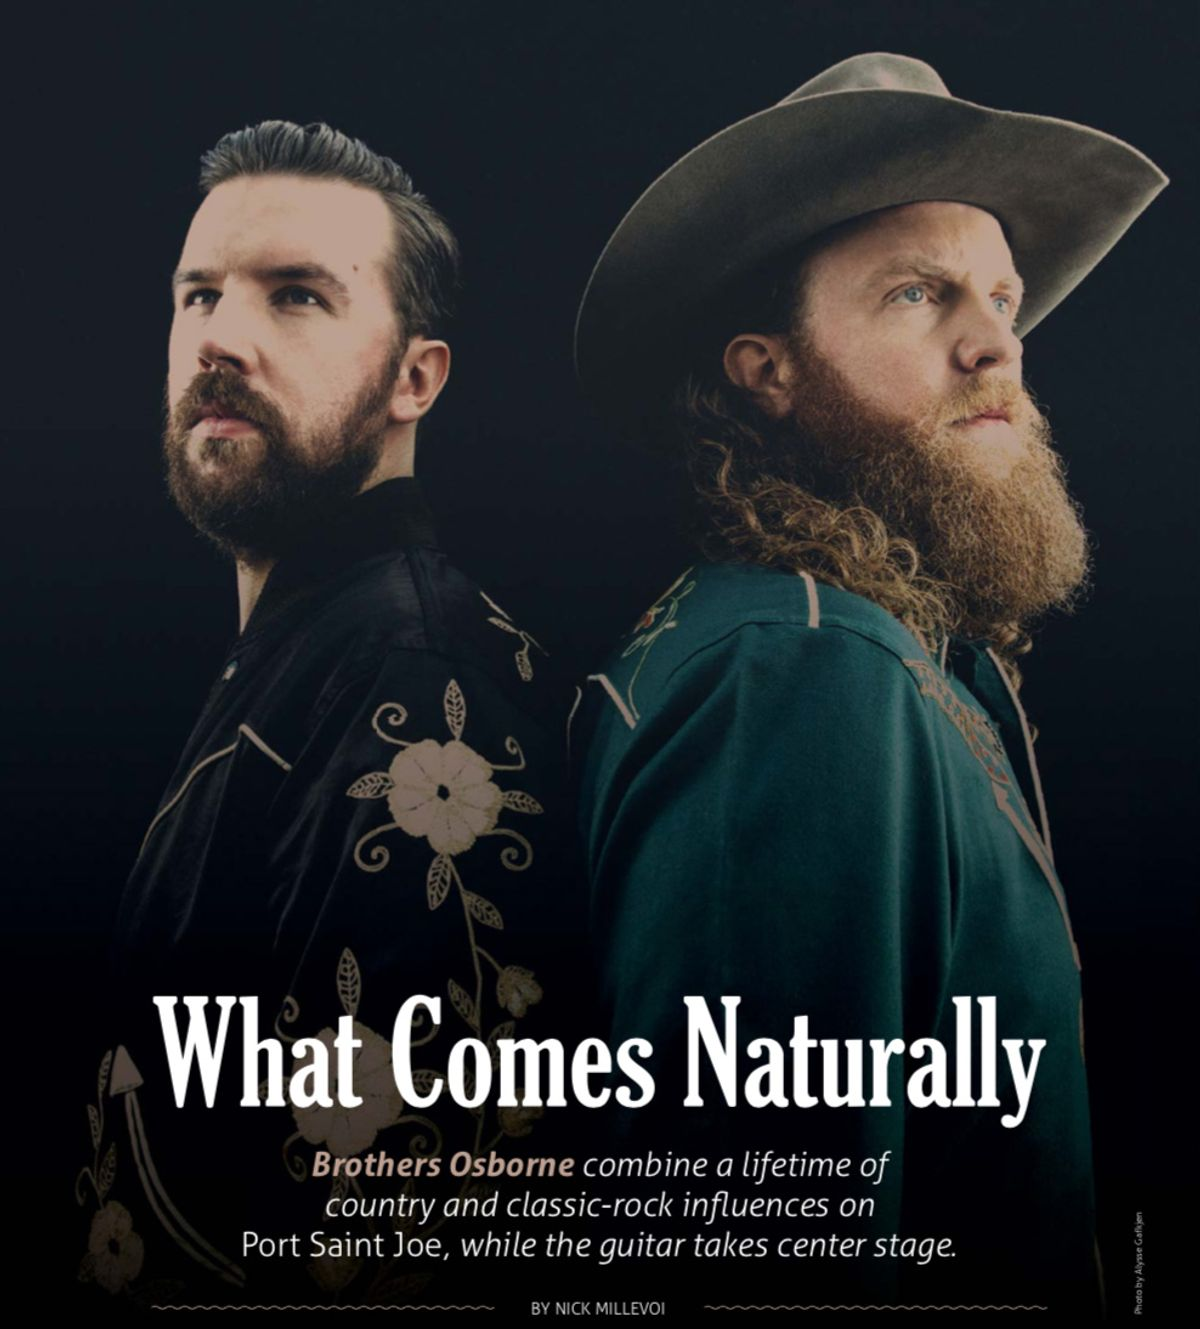 Brothers Osborne: What Comes Naturally